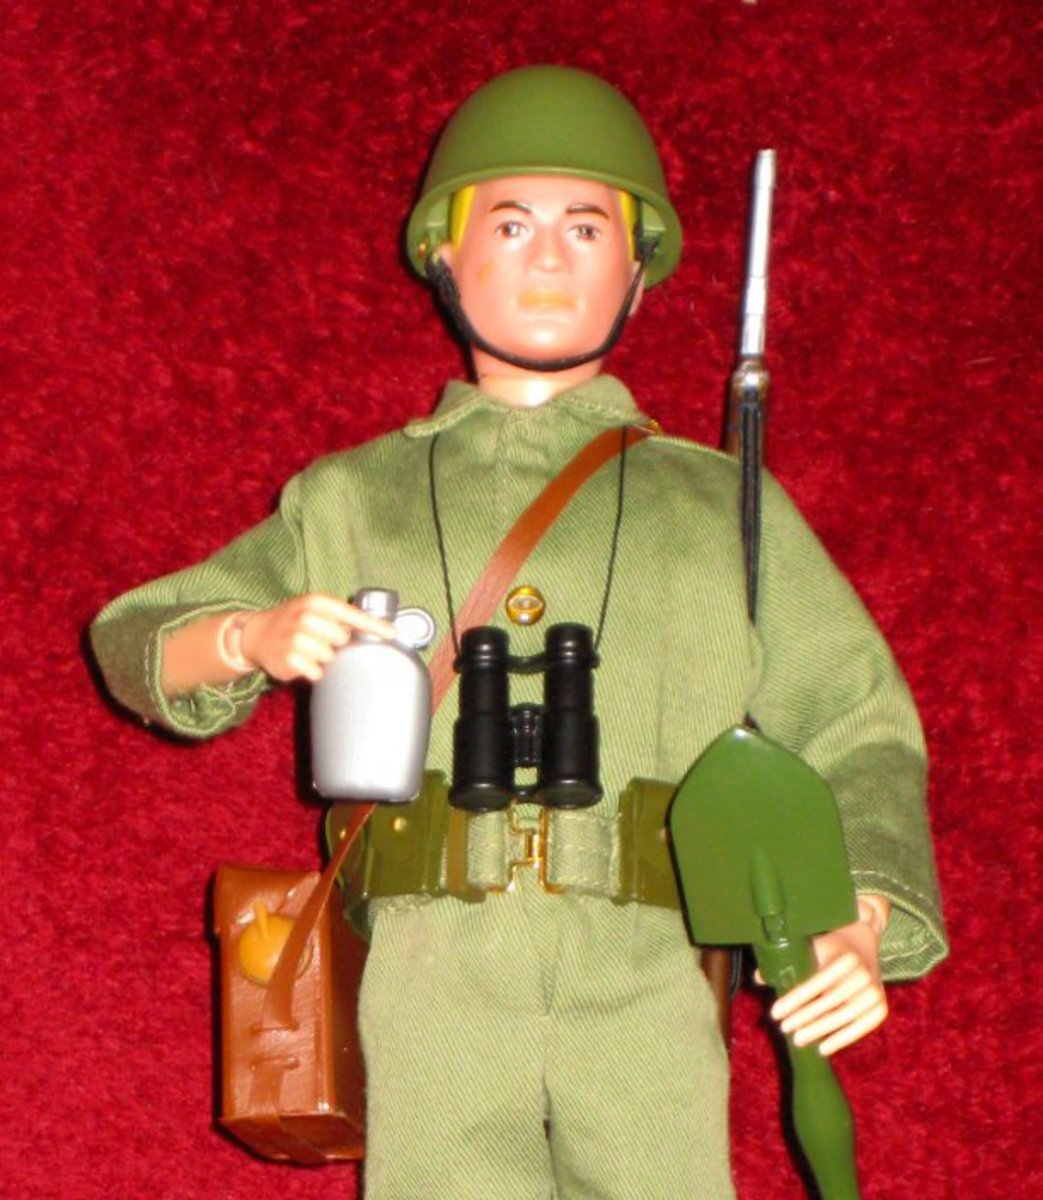 G.I. Joe's hands were designed so that they could actually hold his gear.